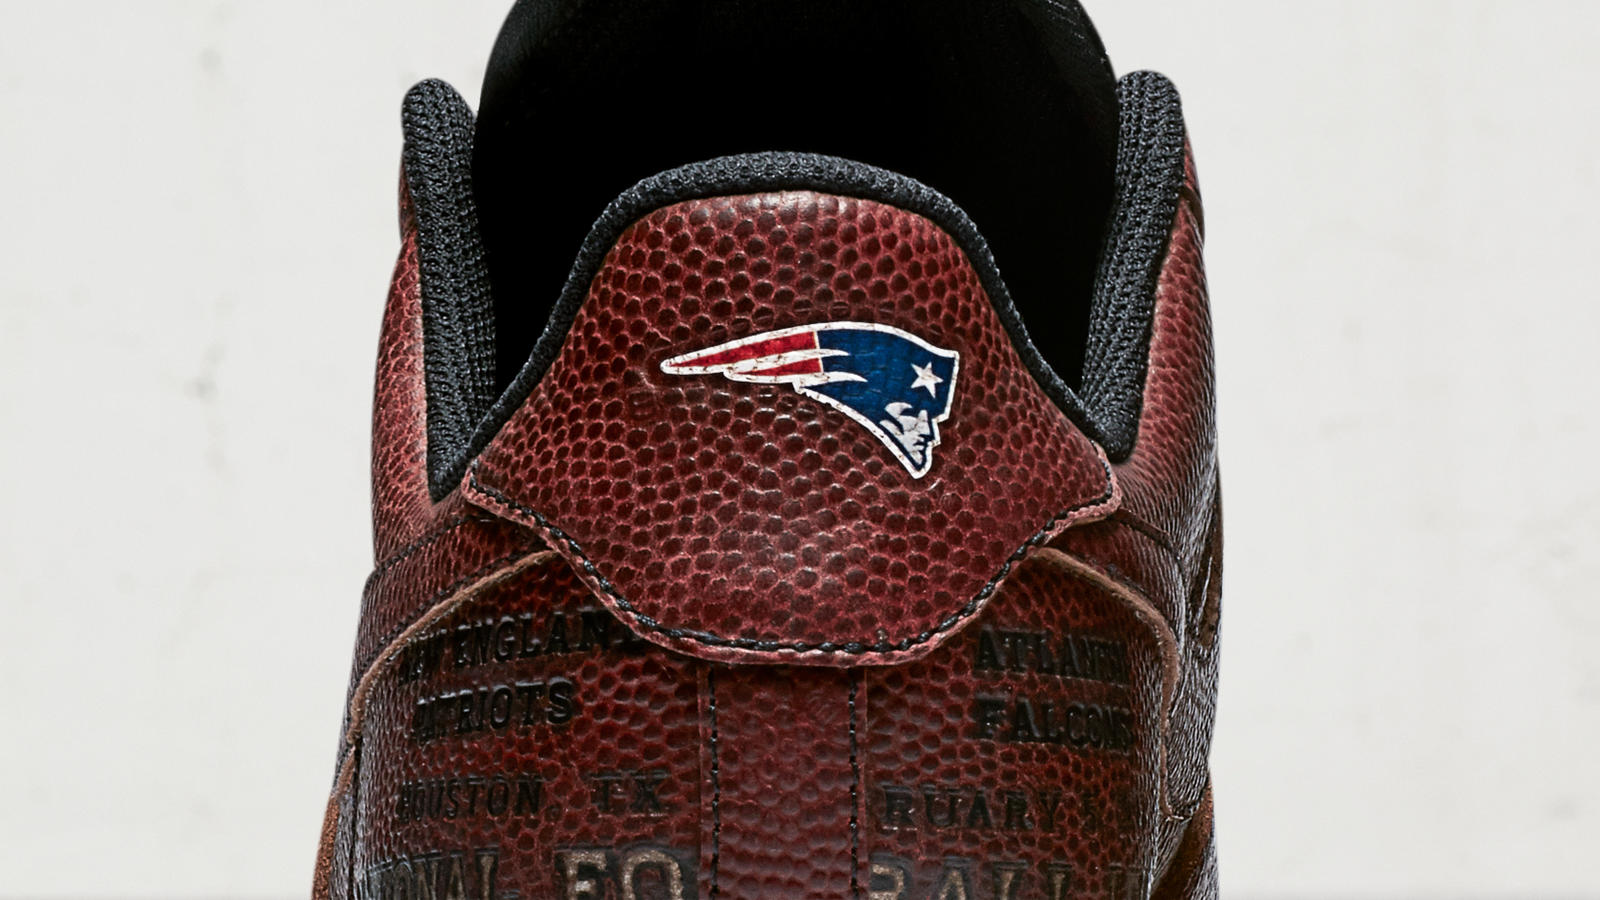 09 29 17 football af1 detail2 hd 1600